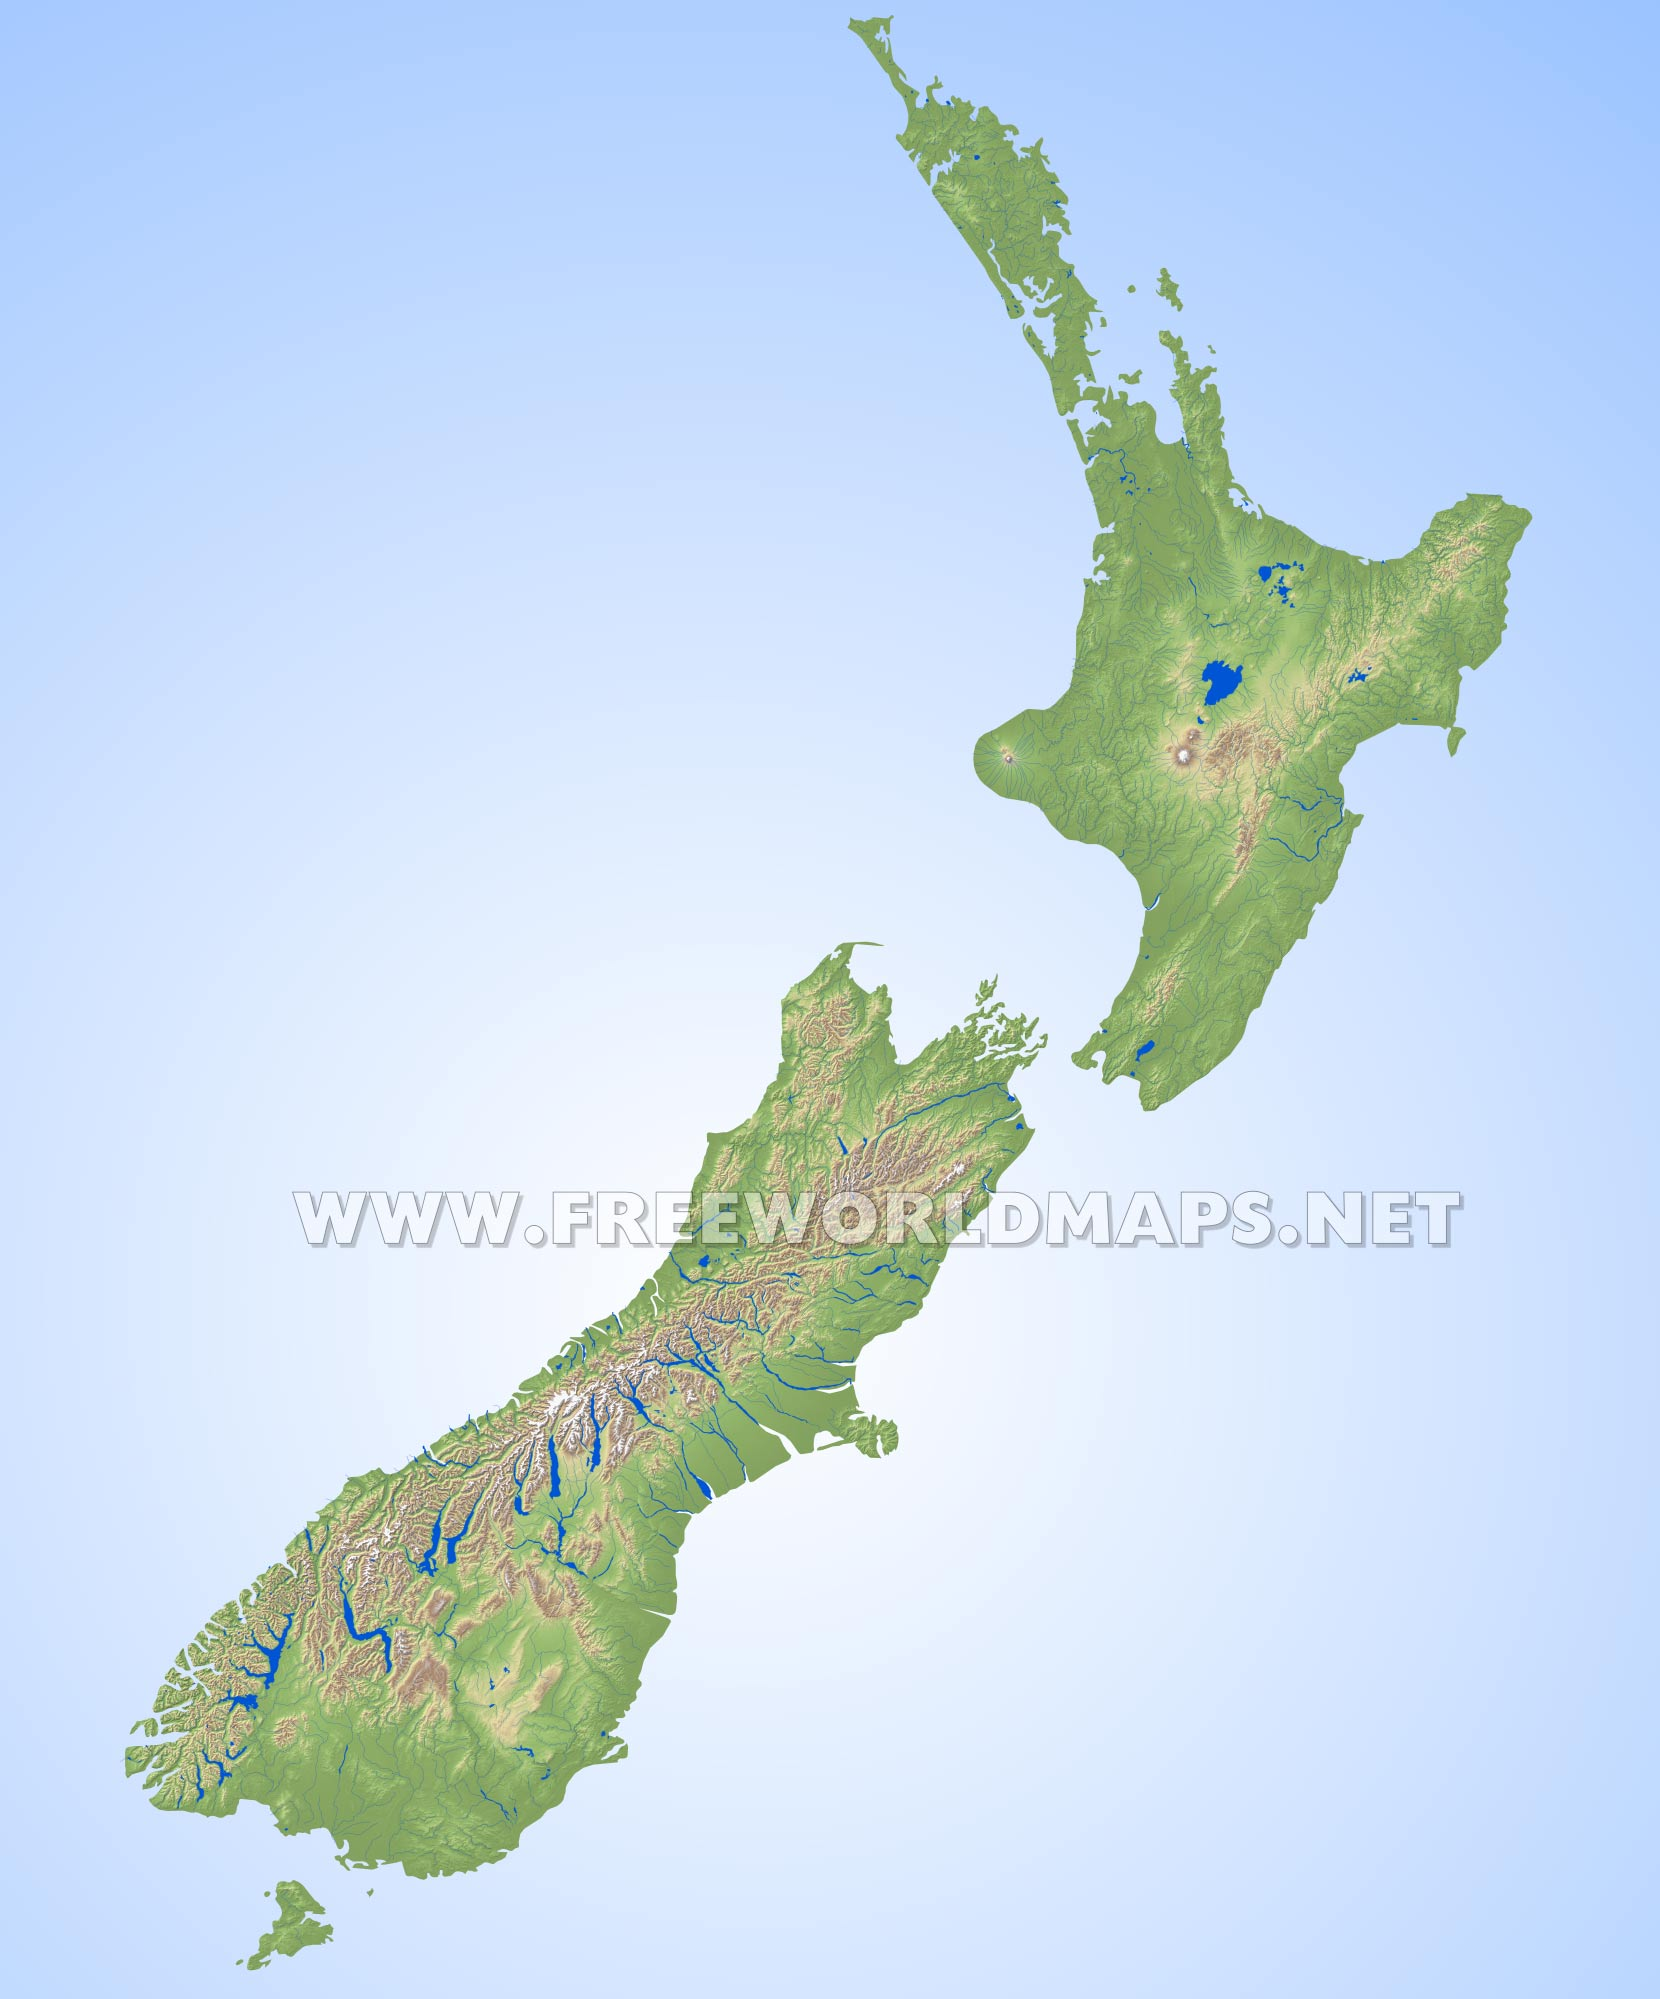 Where Is New Zealand In World Map.New Zealand Physical Map